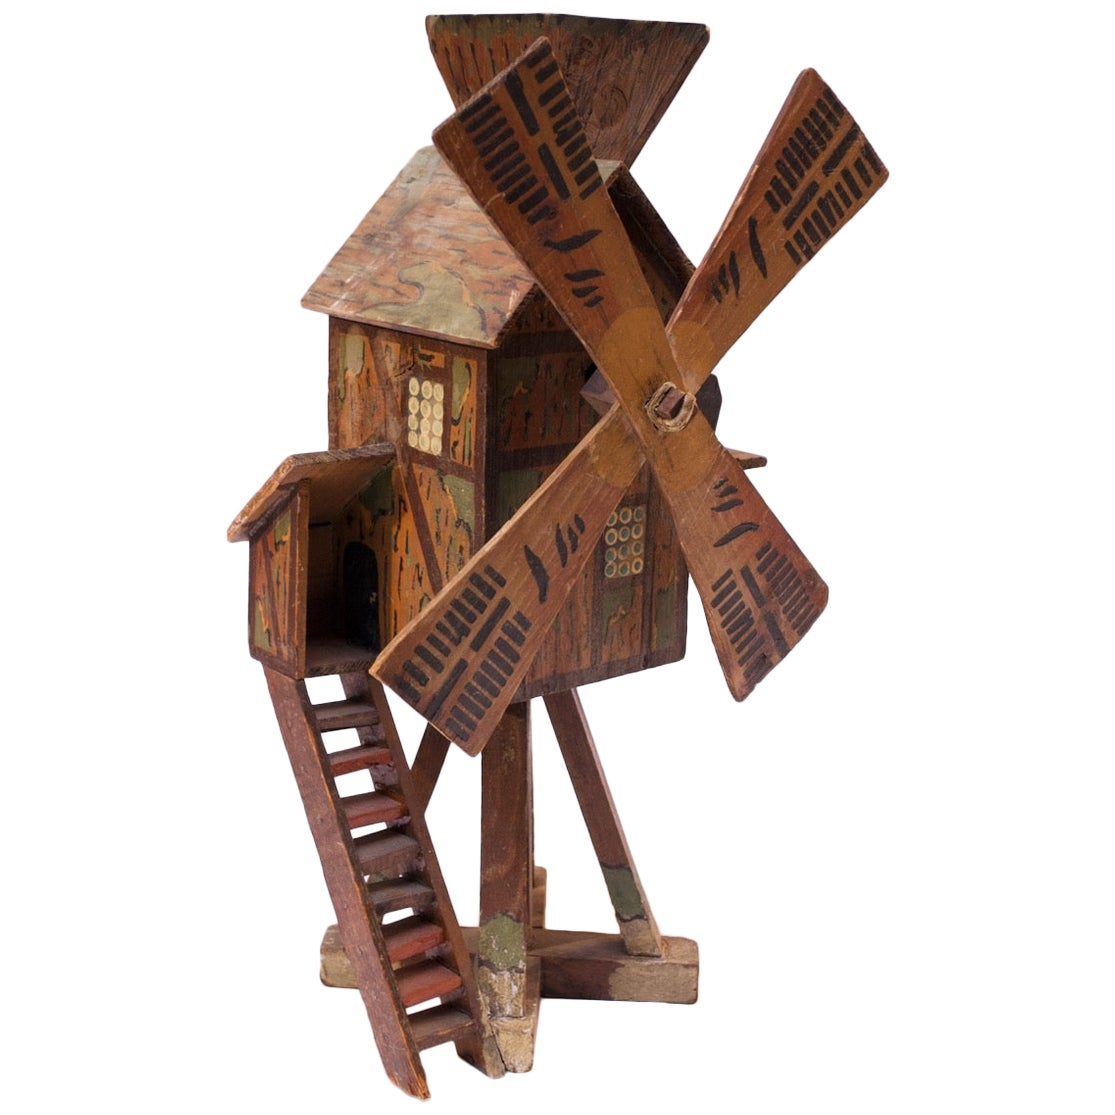 Early 20th Century Folk Art Hand Carved and Painted Barn Whirligig / Birdhouse